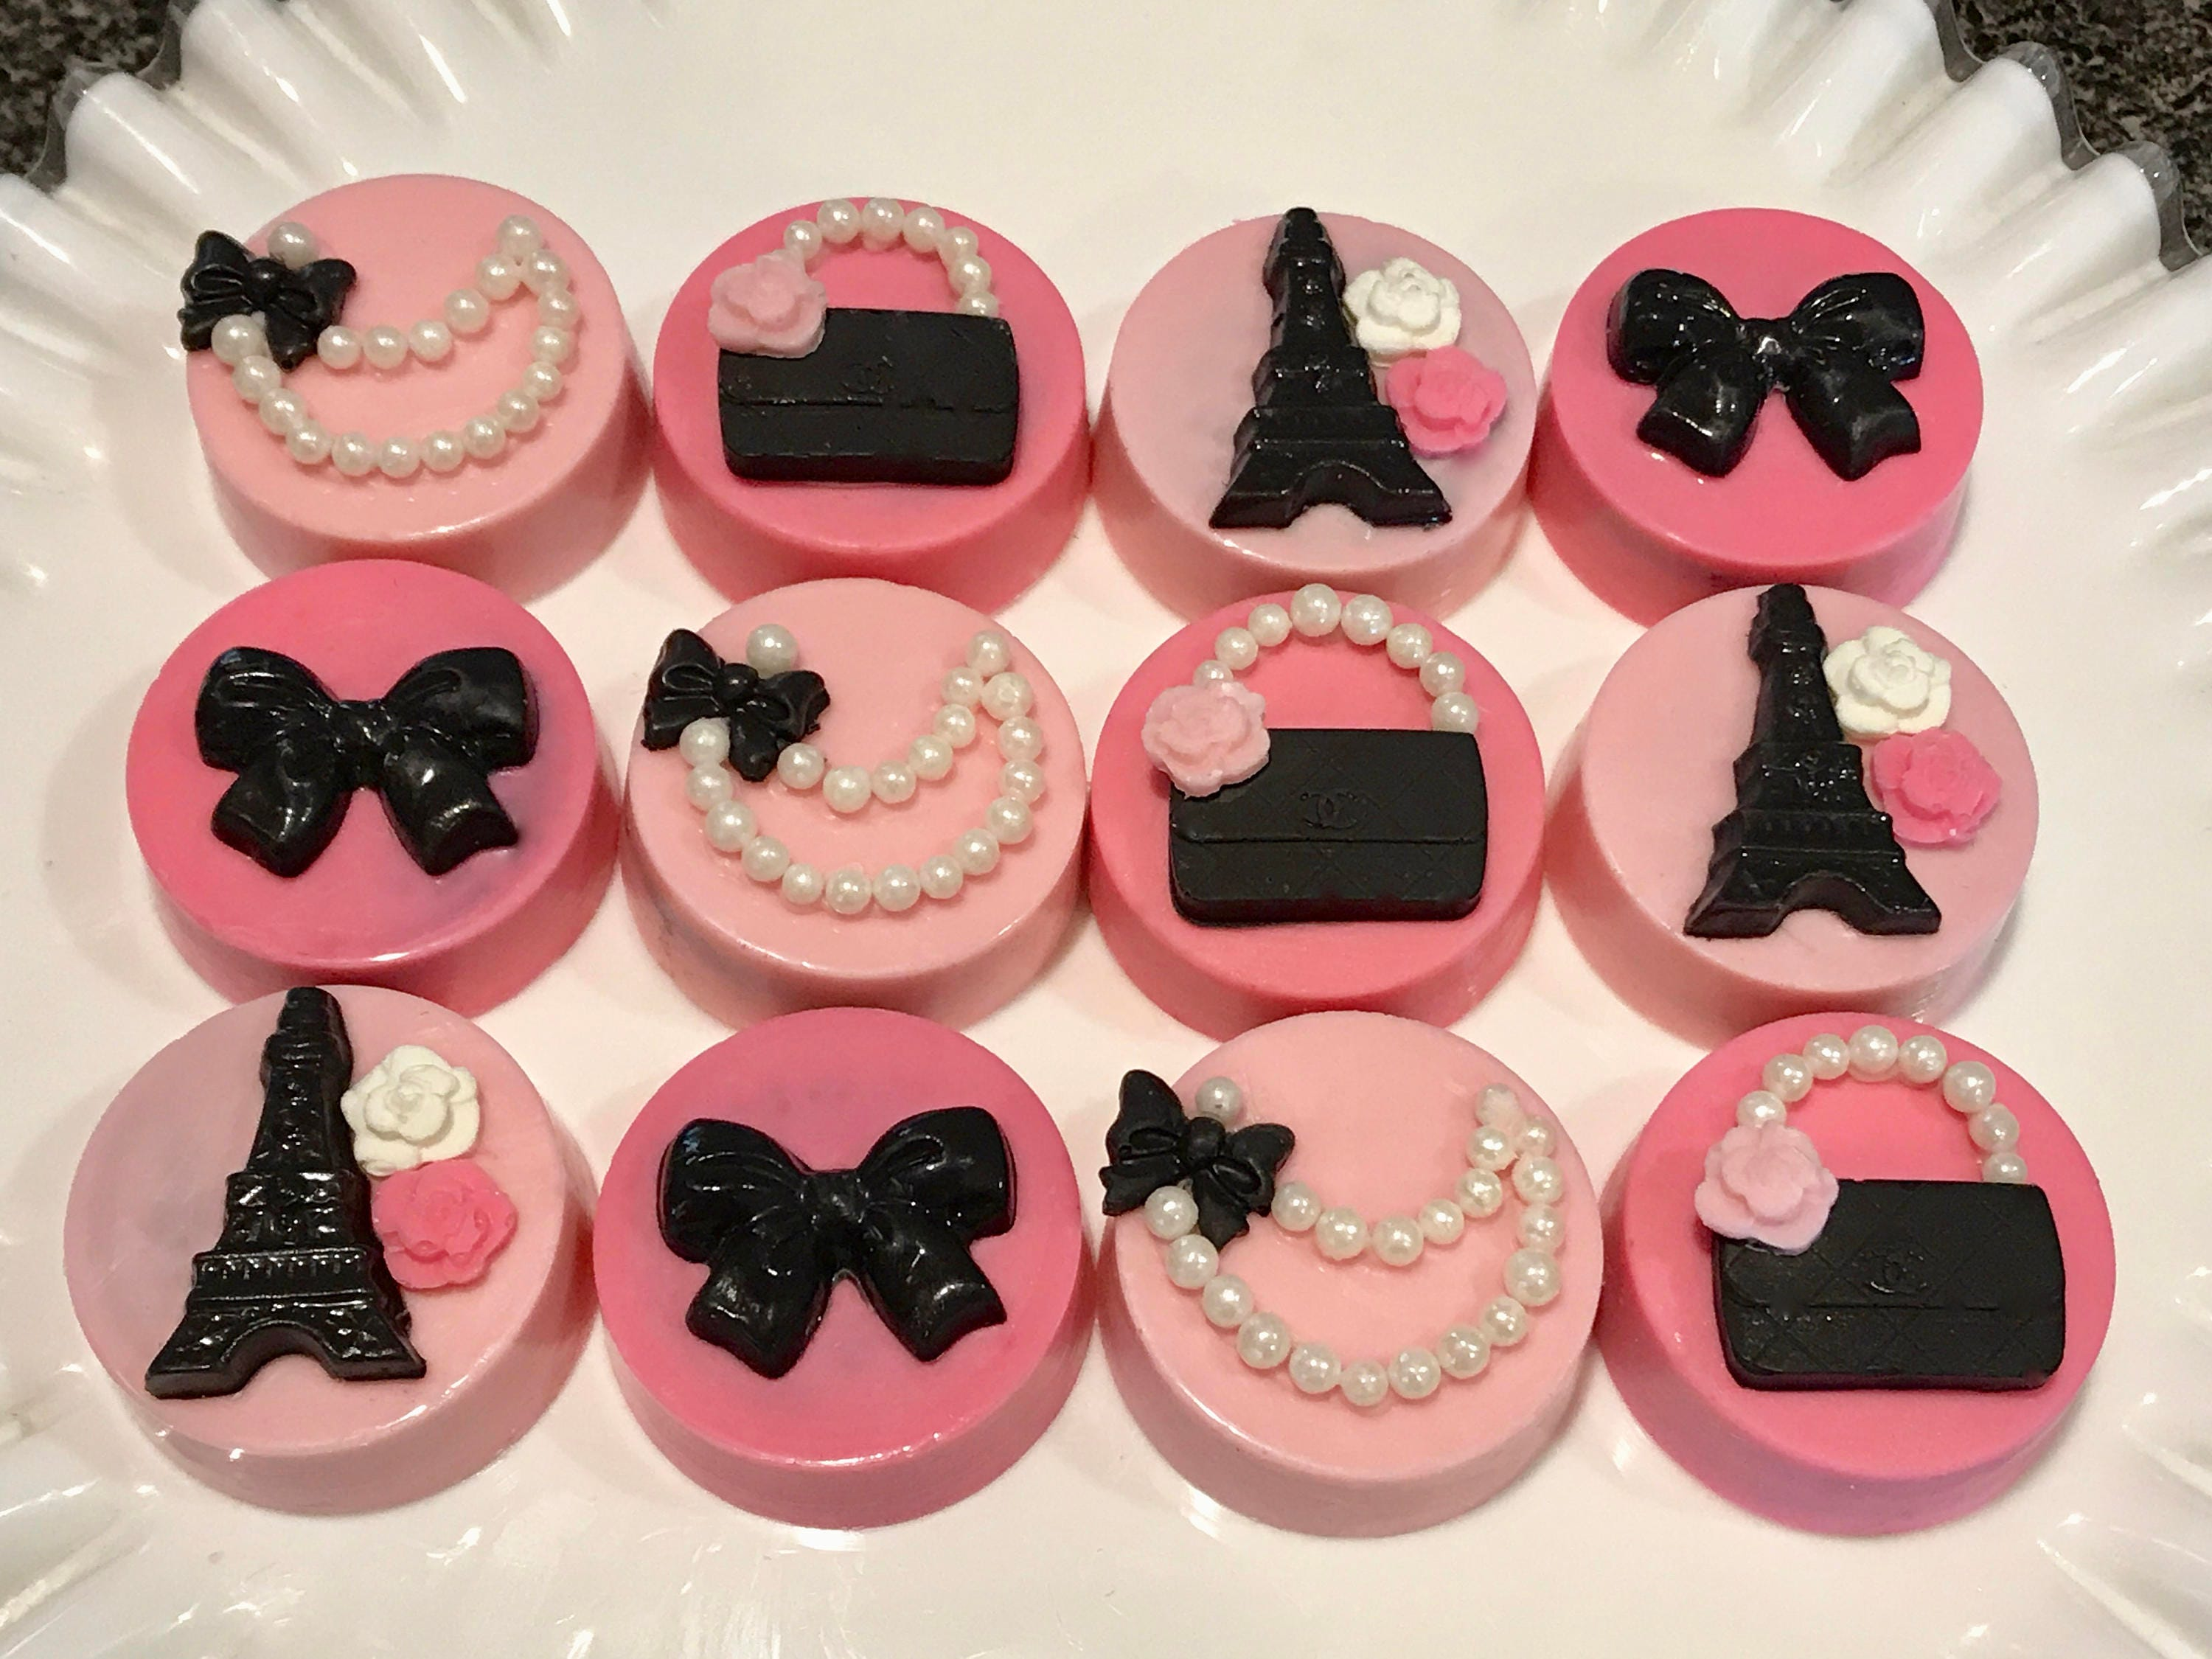 Night in Paris Chanel Chocolate Covered Oreos